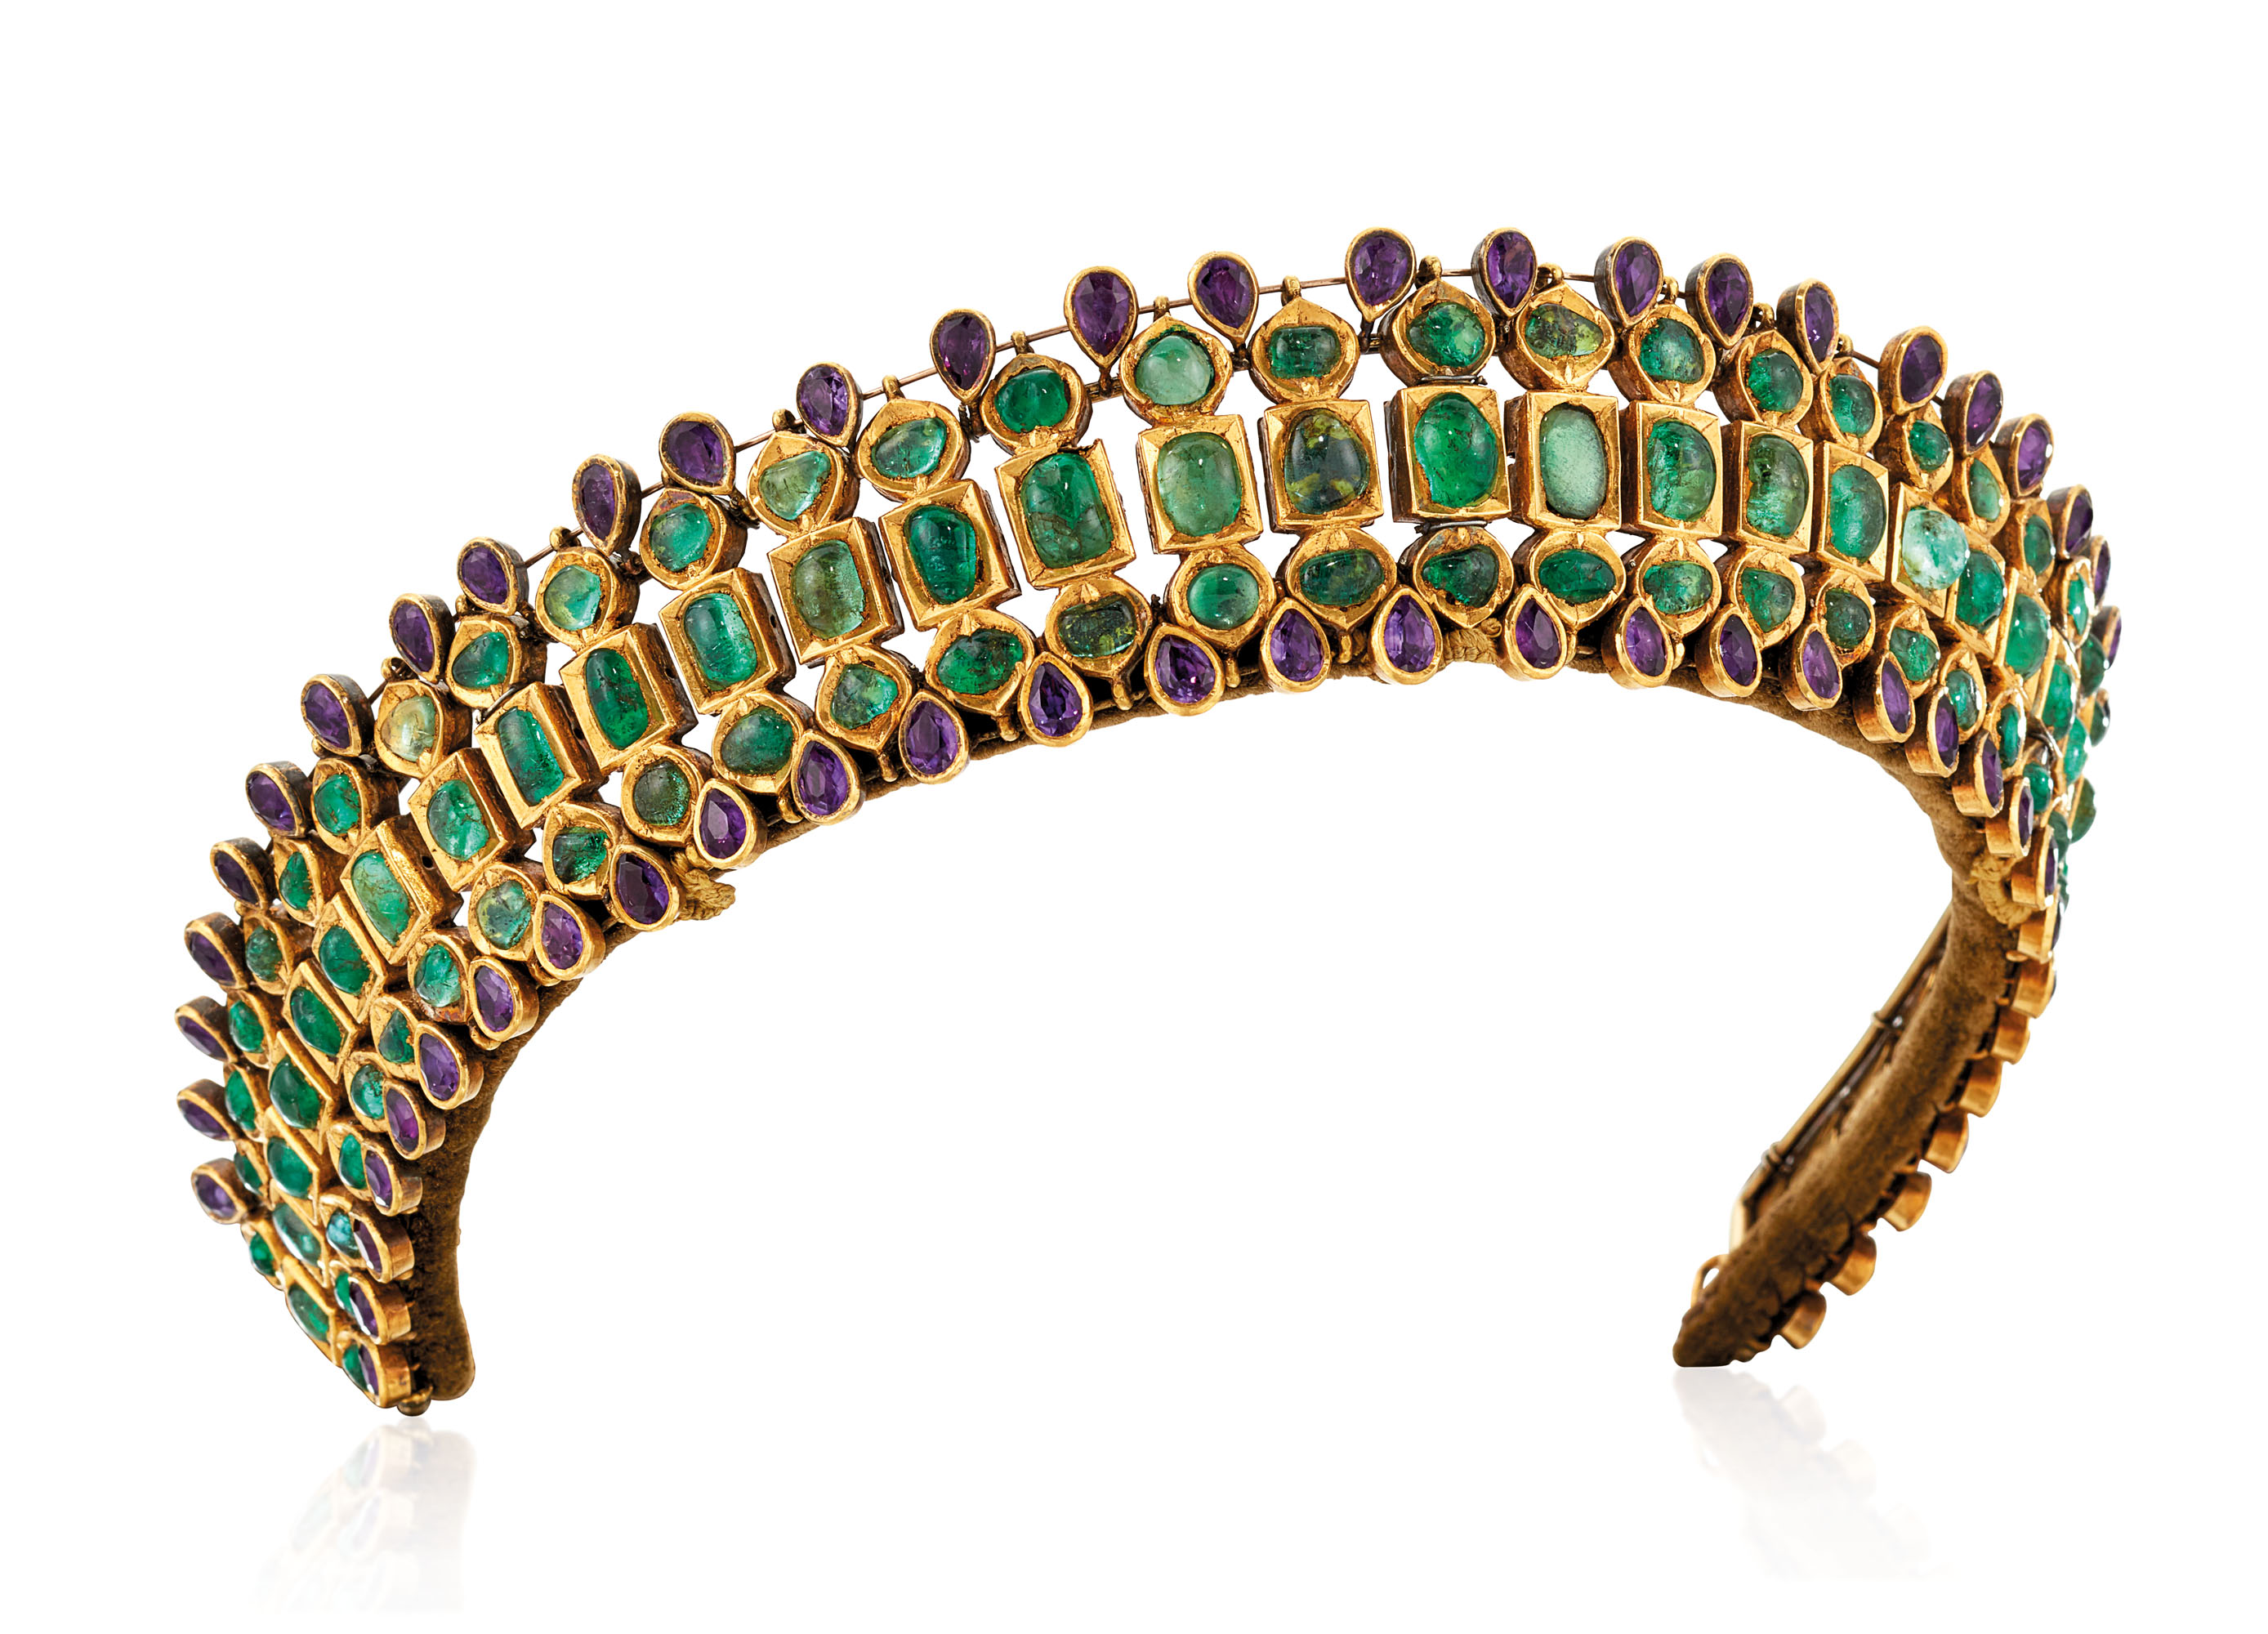 LATE 19TH CENTURY EMERALD AND AMETHYST TIARA